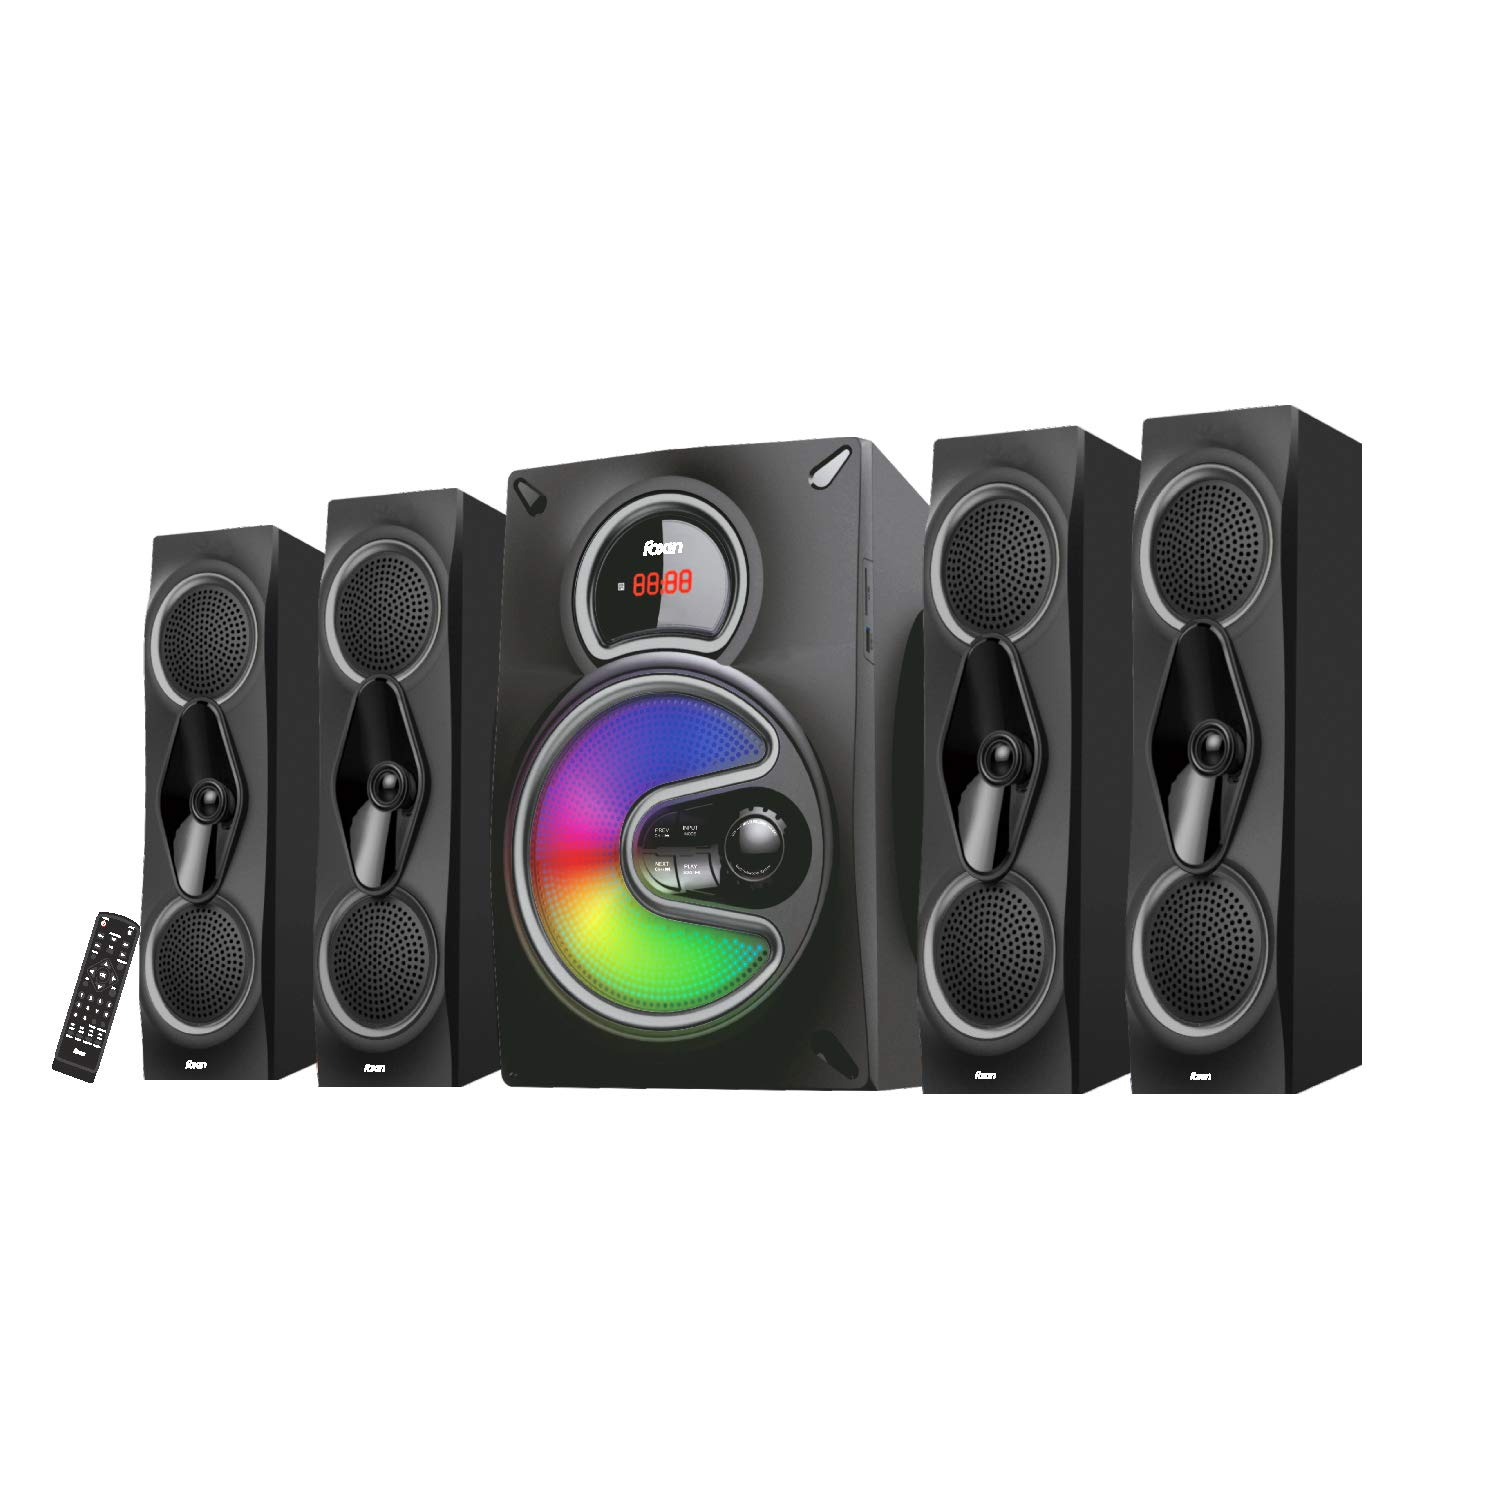 Foxin FMS 8400 Blaster 4.1 Channel Multimedia Speakers